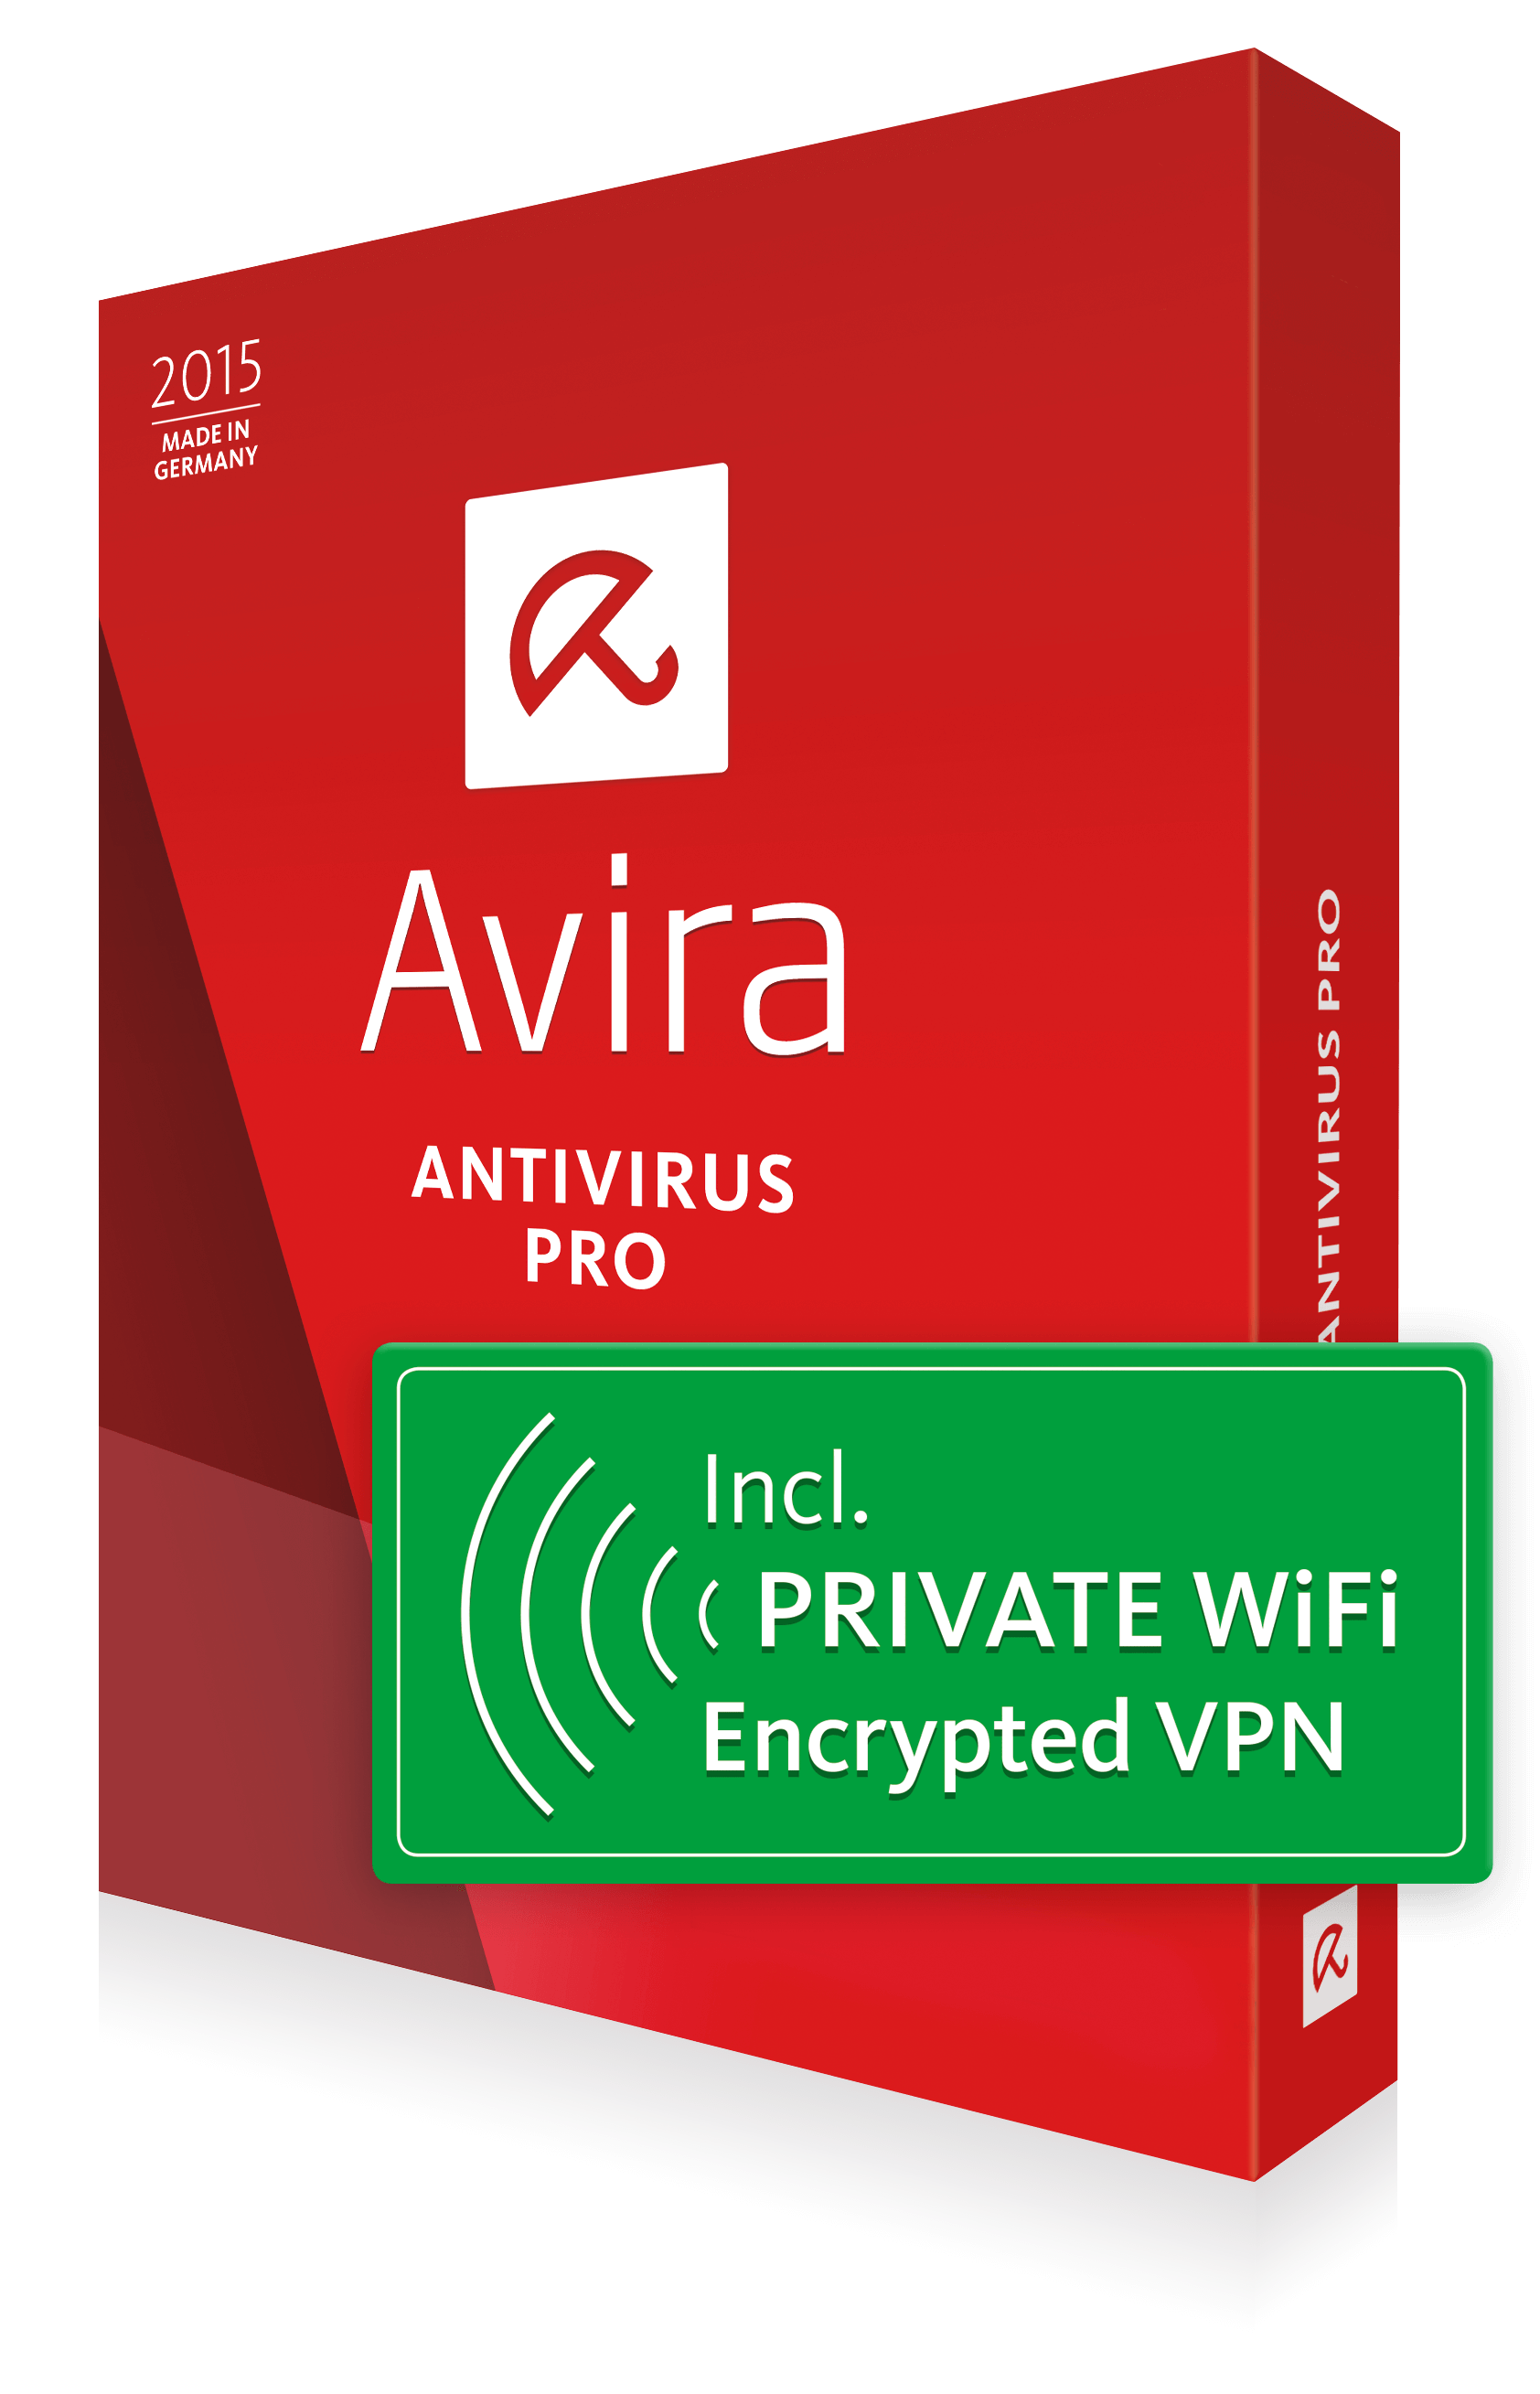 Avira Antivirus Pro + PRIVATE WiFi Encrypted VPN